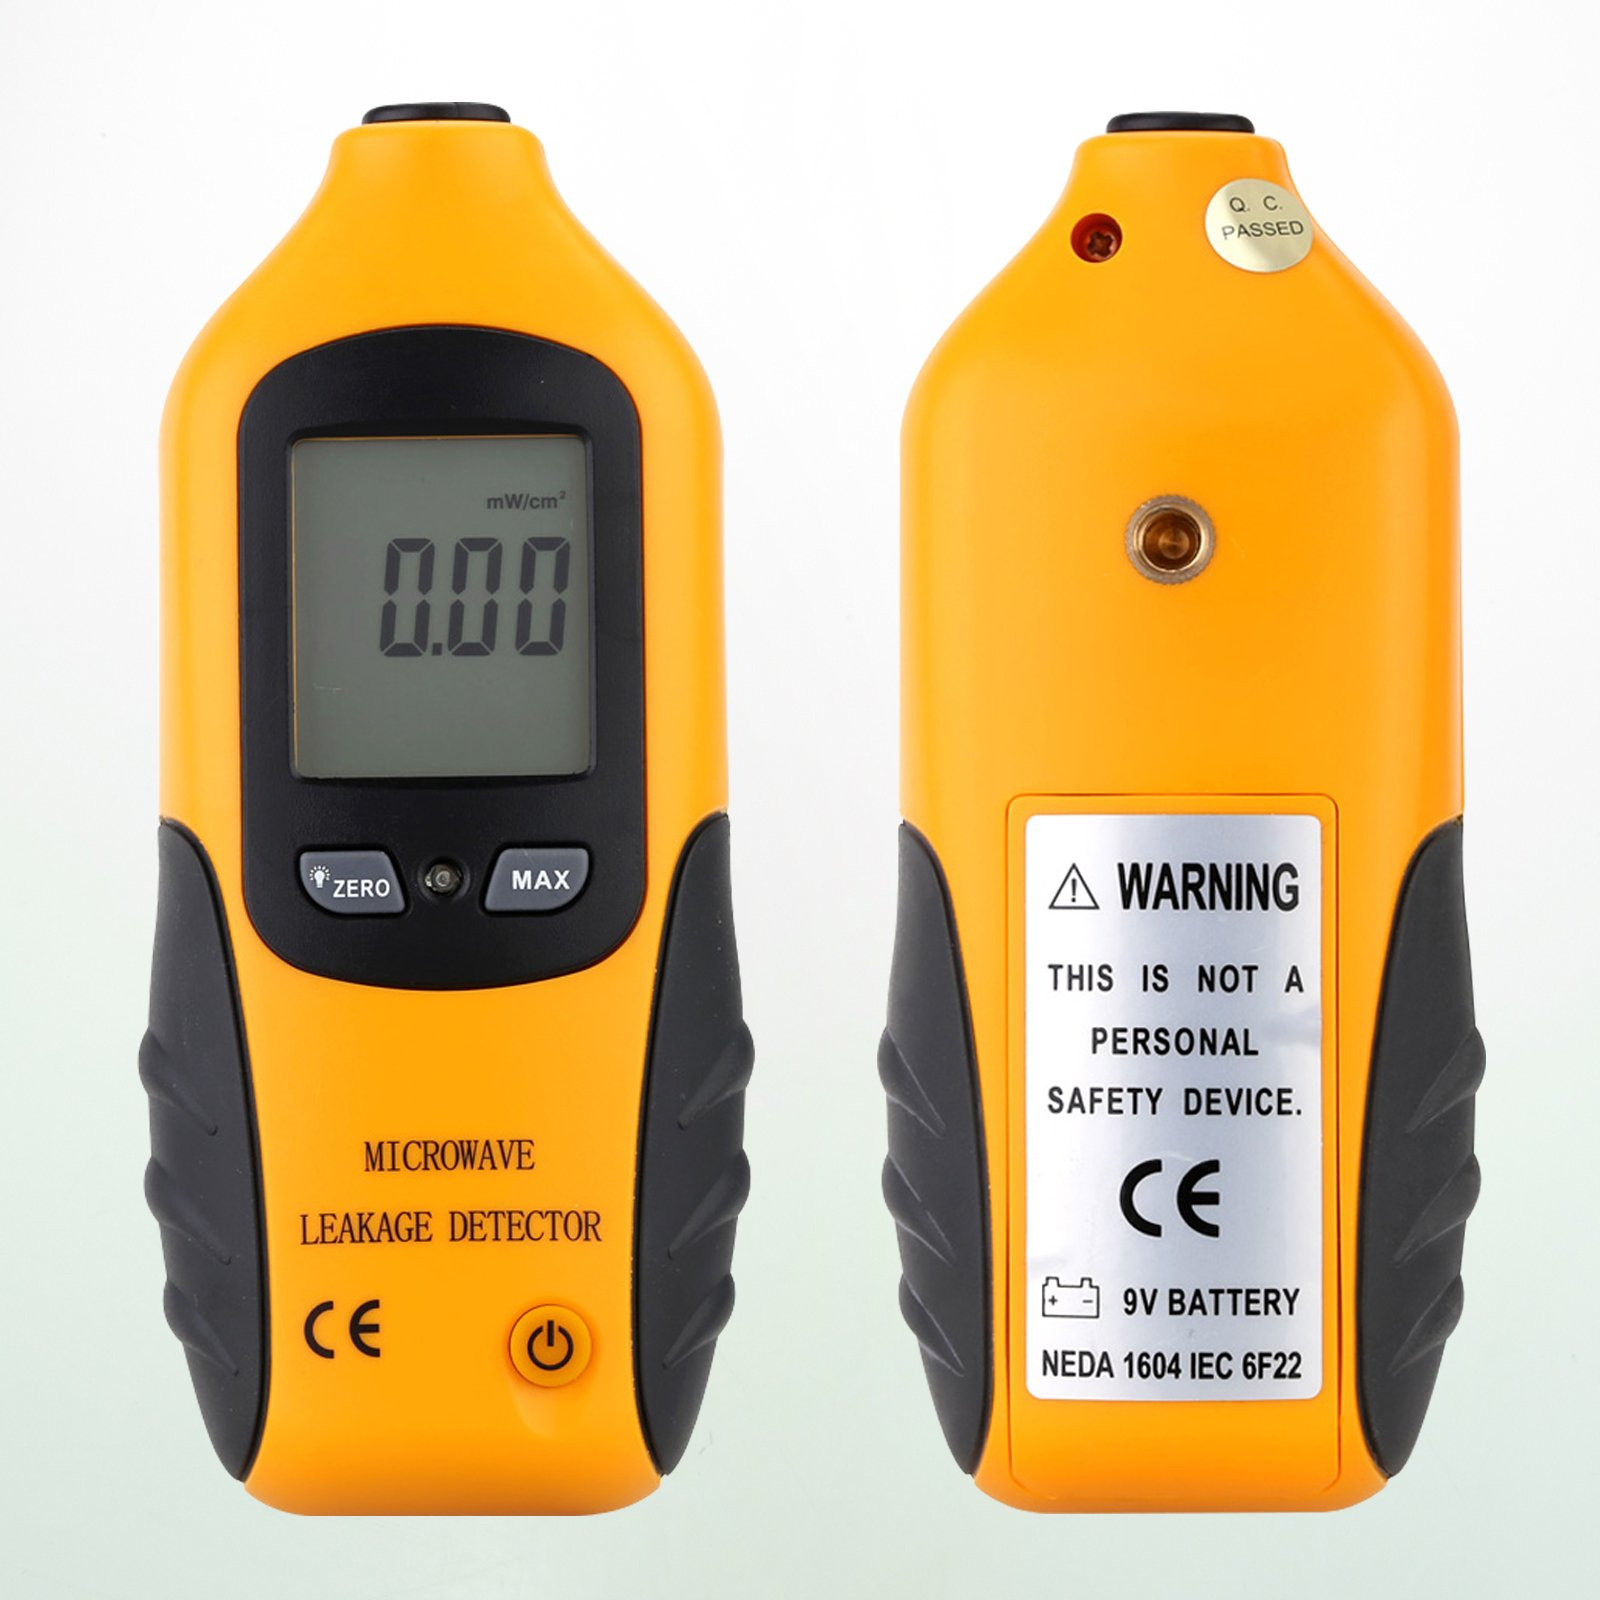 Professional Microwave Leakage Detector Meter With